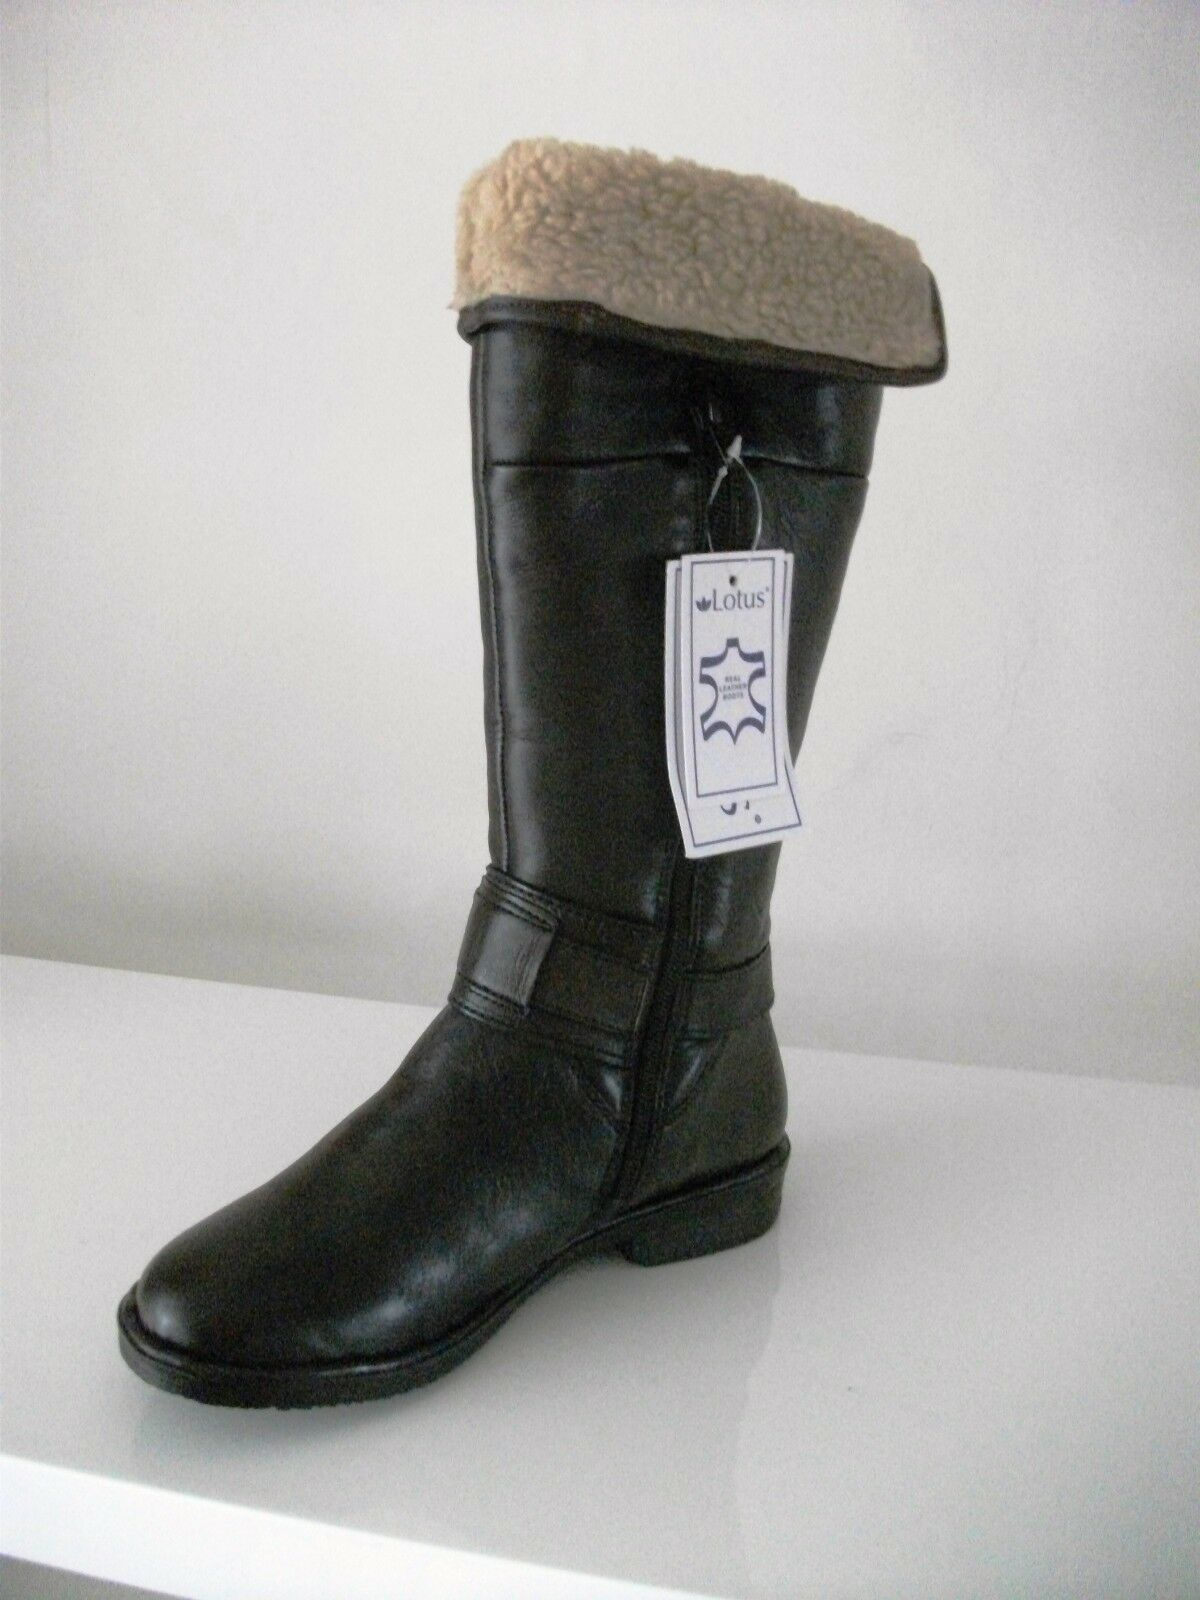 Lotus Length Calf Length Lotus Leder Stiefel Style Manson 40033  In Braun Only 01a482